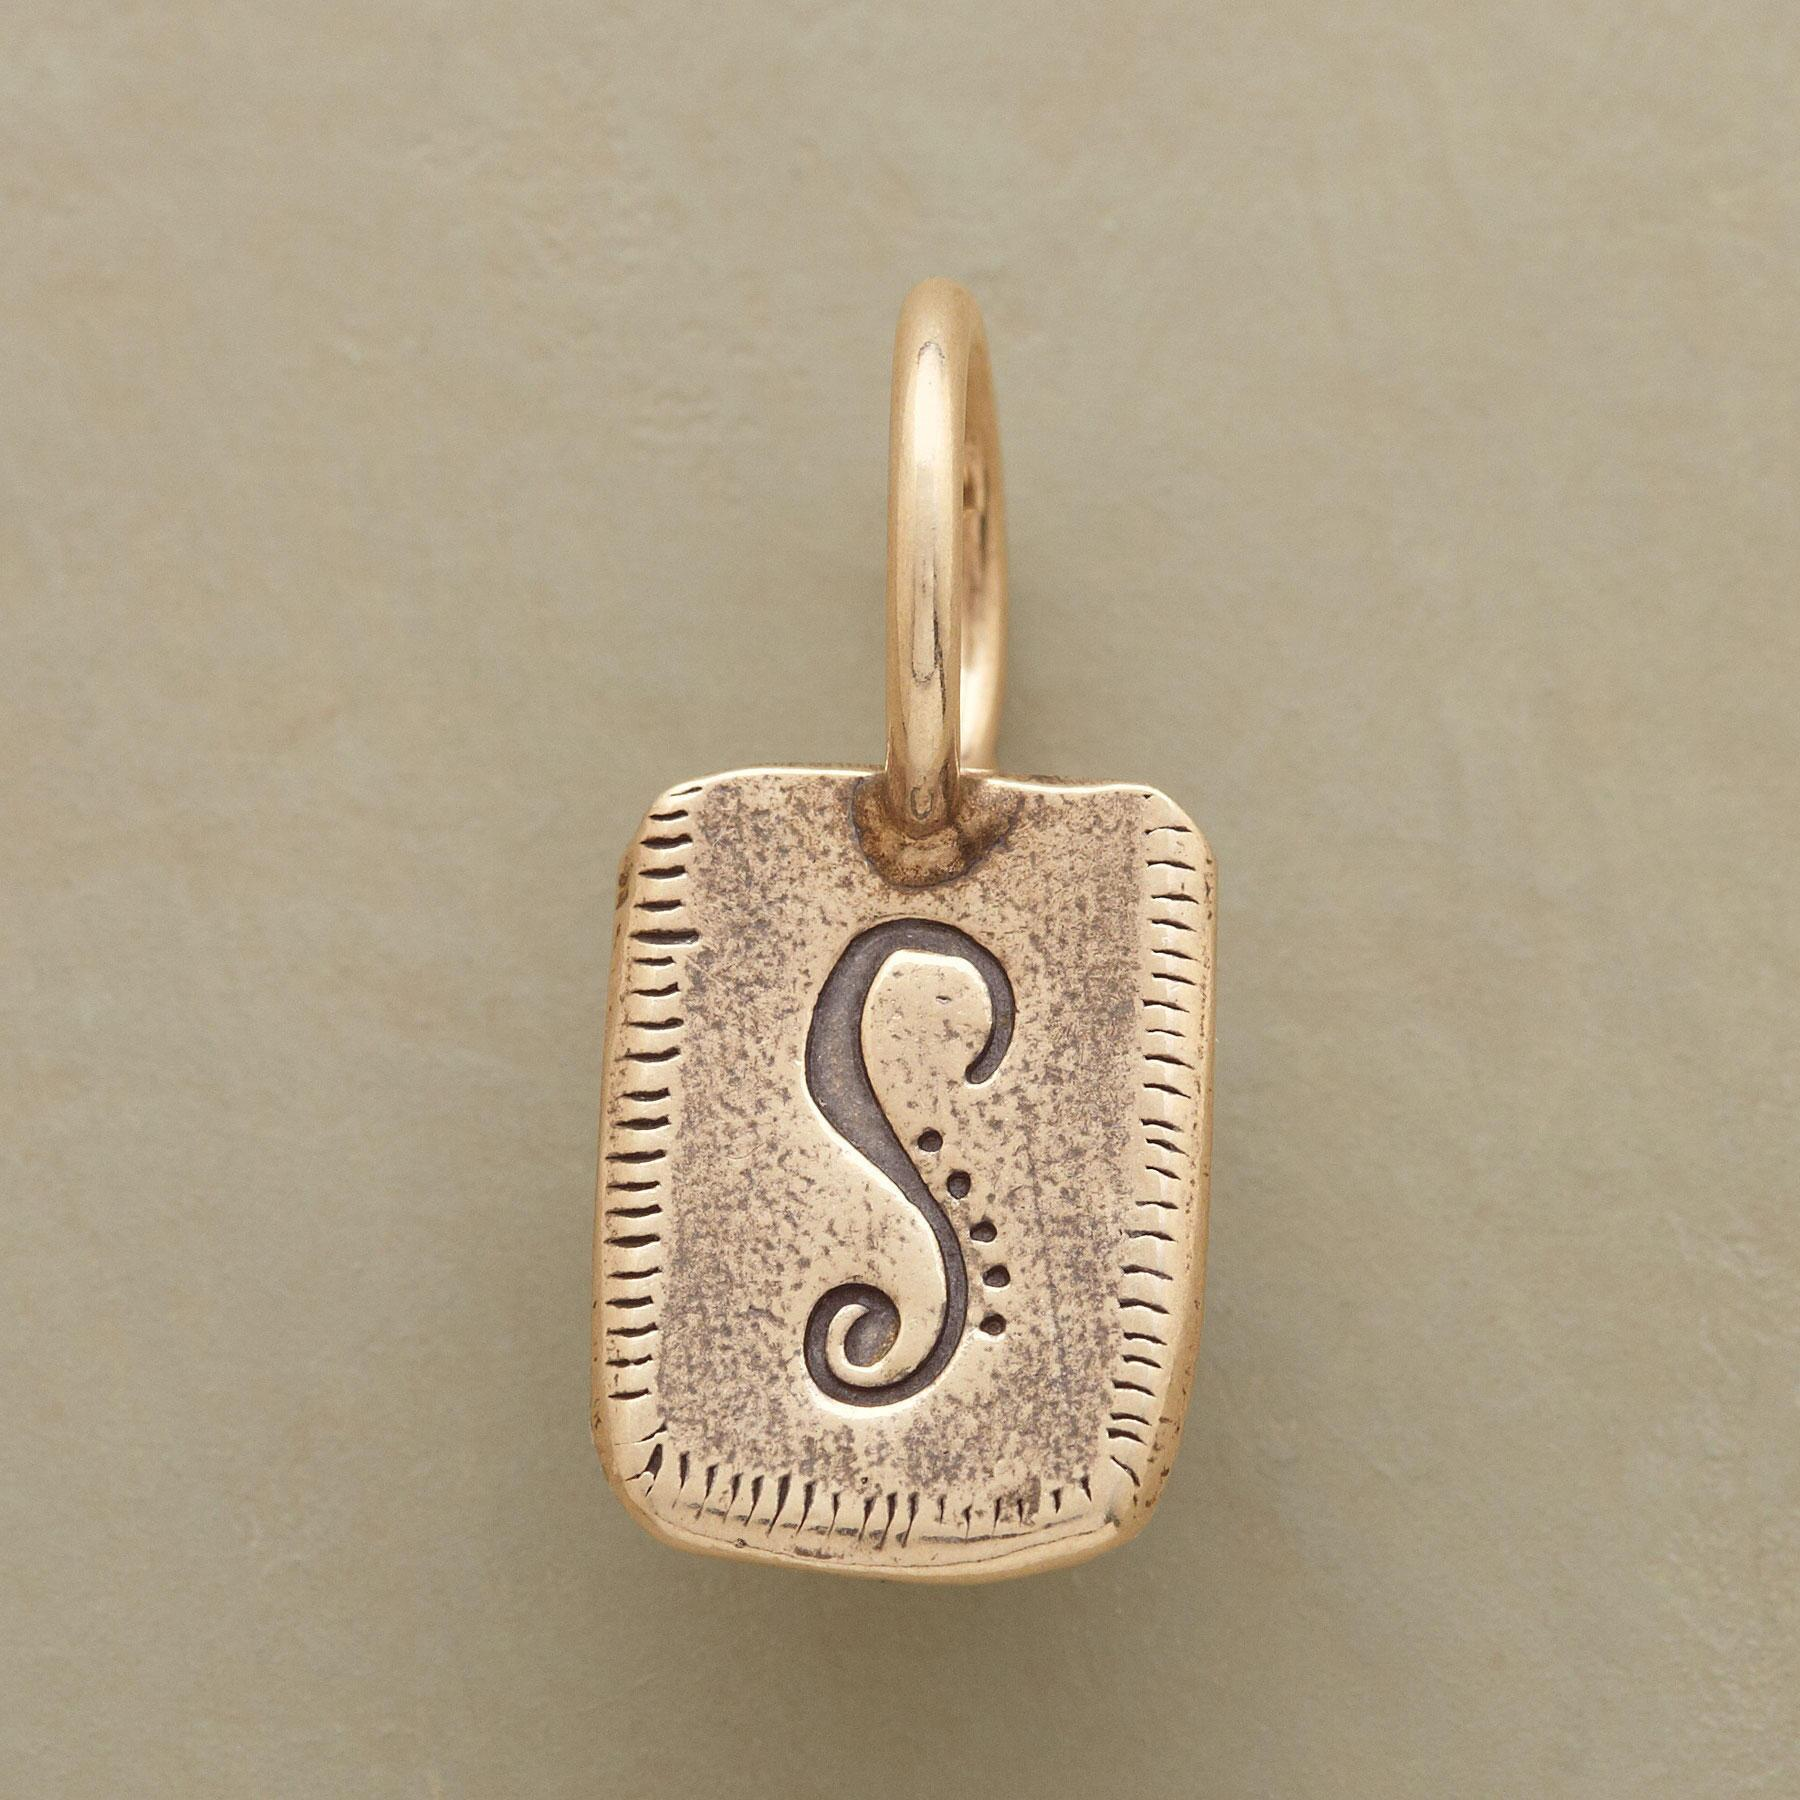 GOLD PERSONALIZED INITIAL CHARM: View 1